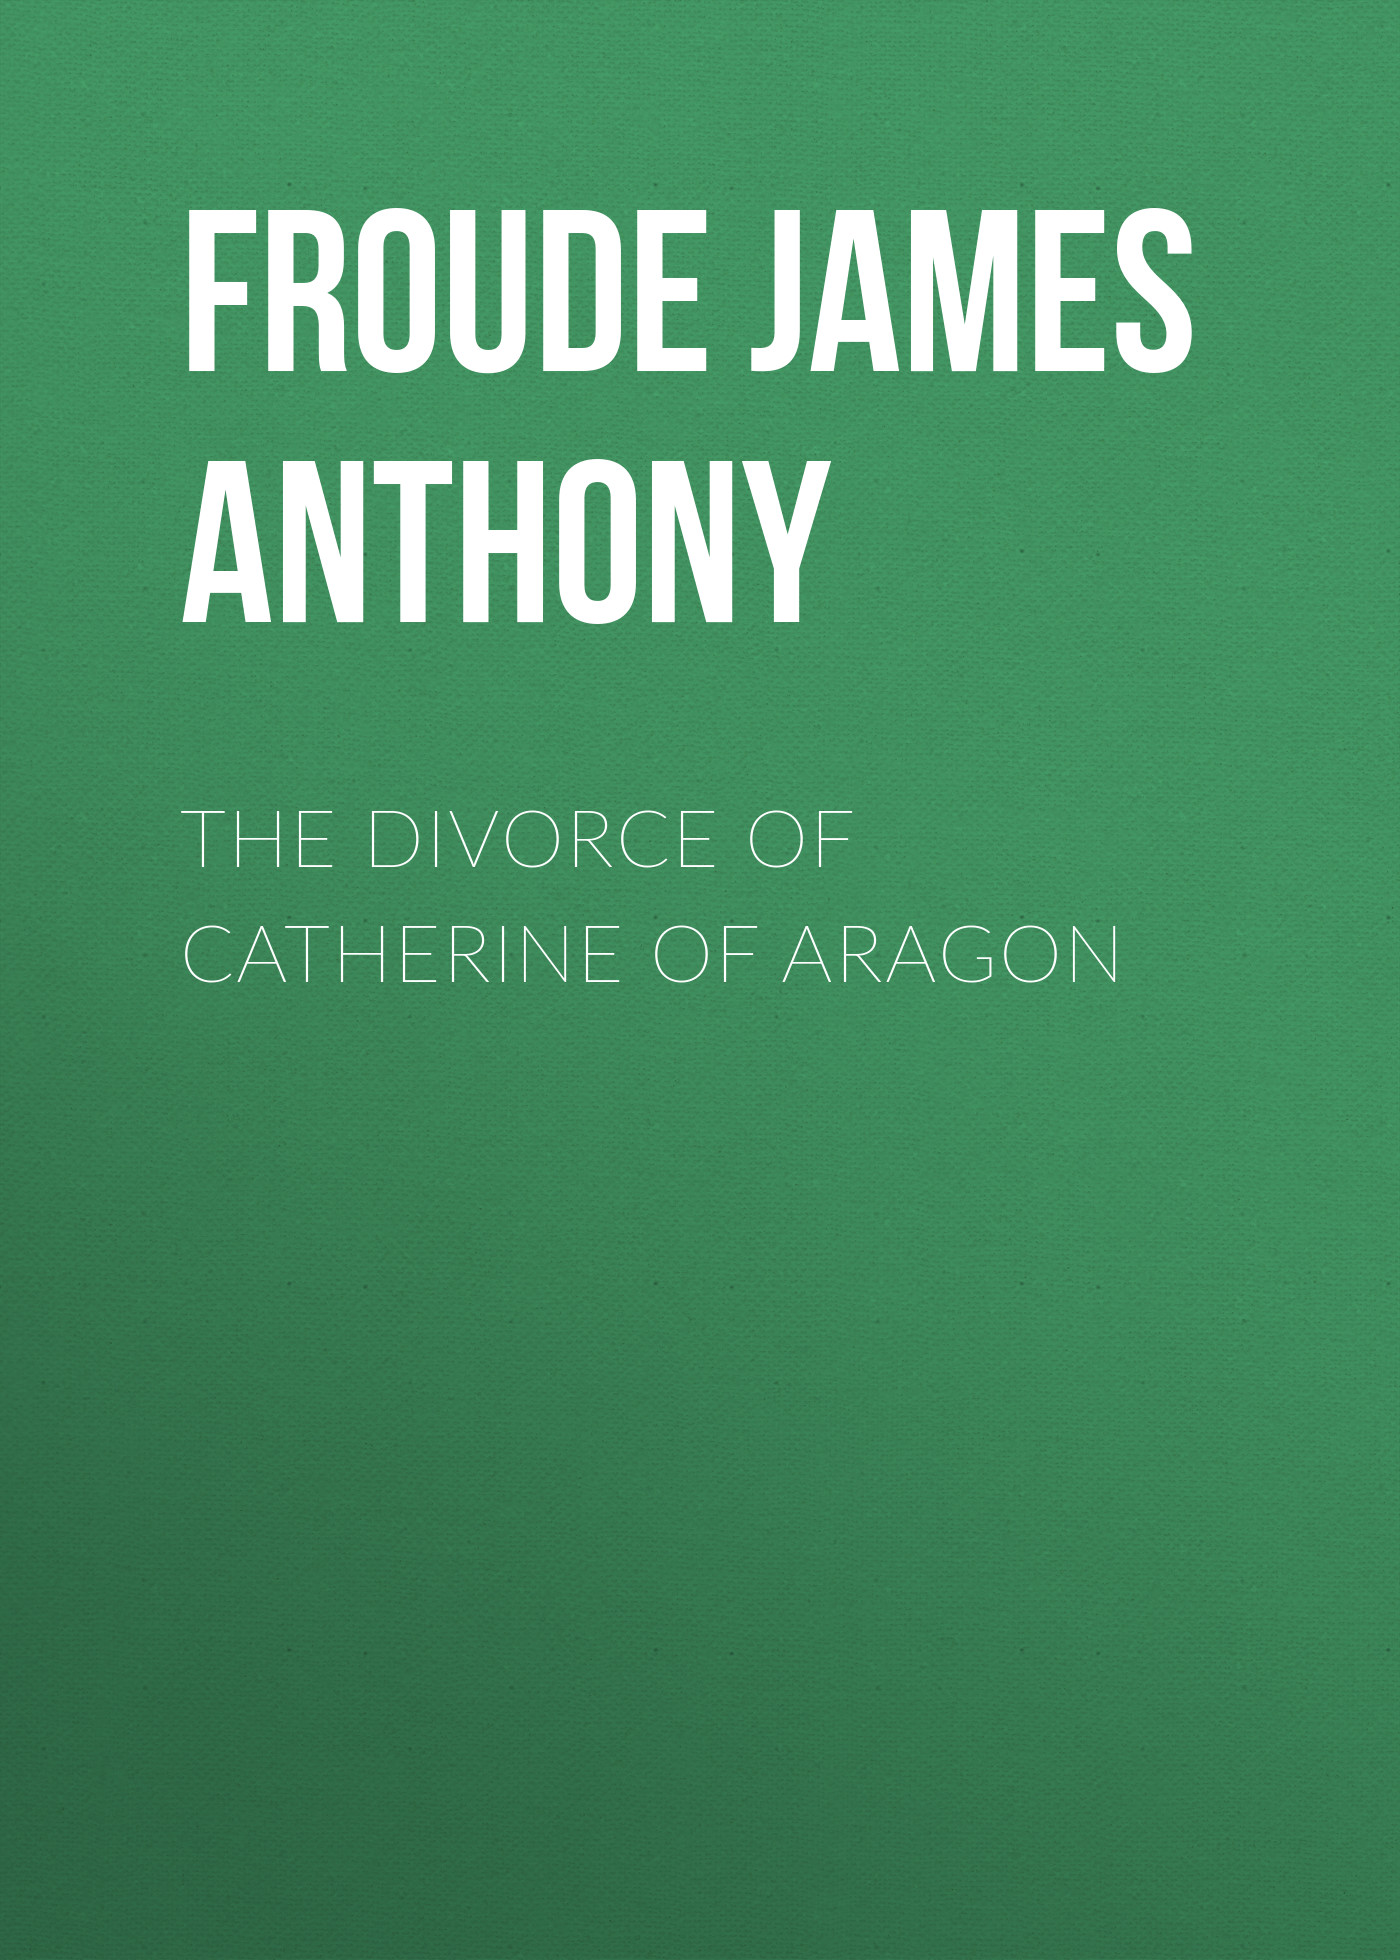 Froude James Anthony The Divorce of Catherine Aragon